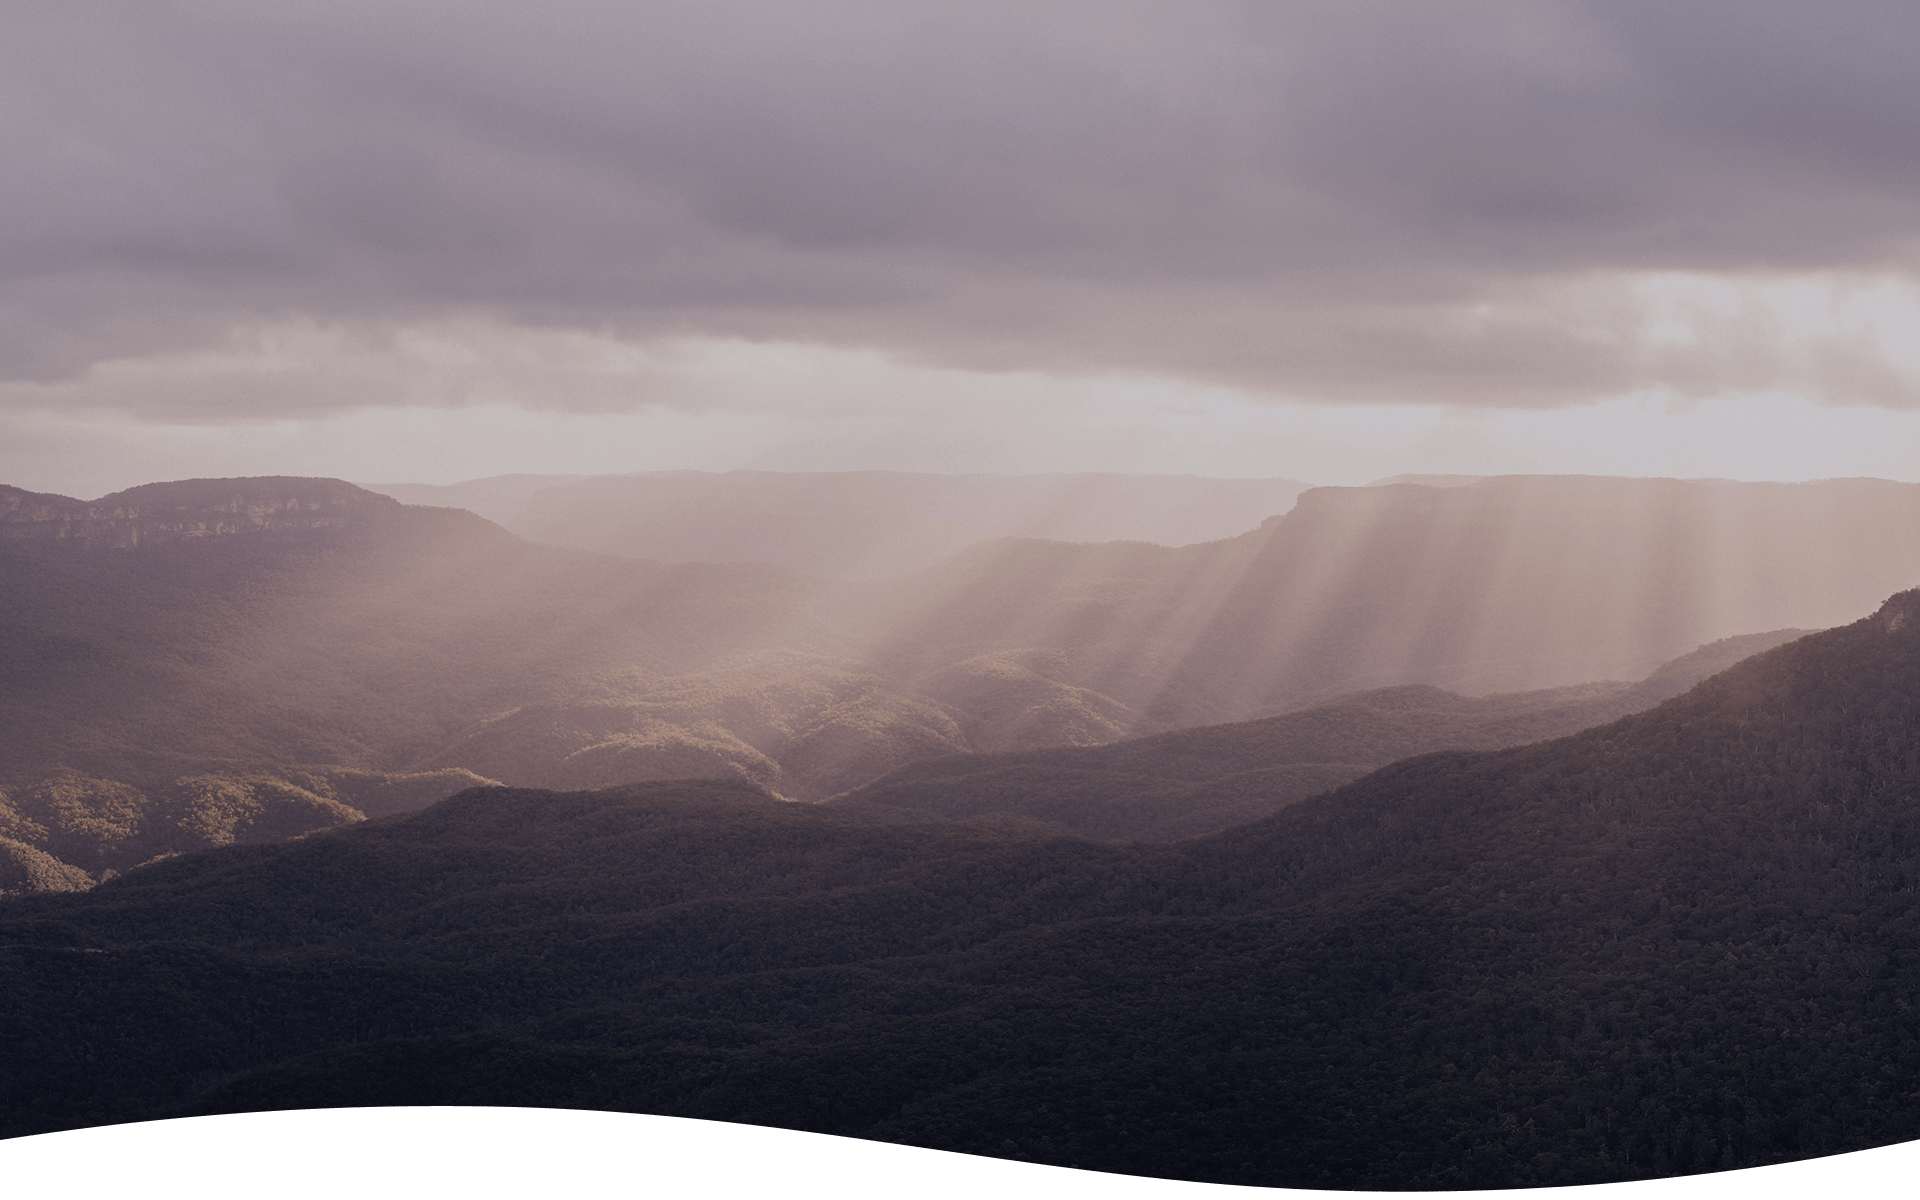 Webinar background showing the Blue Mountains in NSW Australia